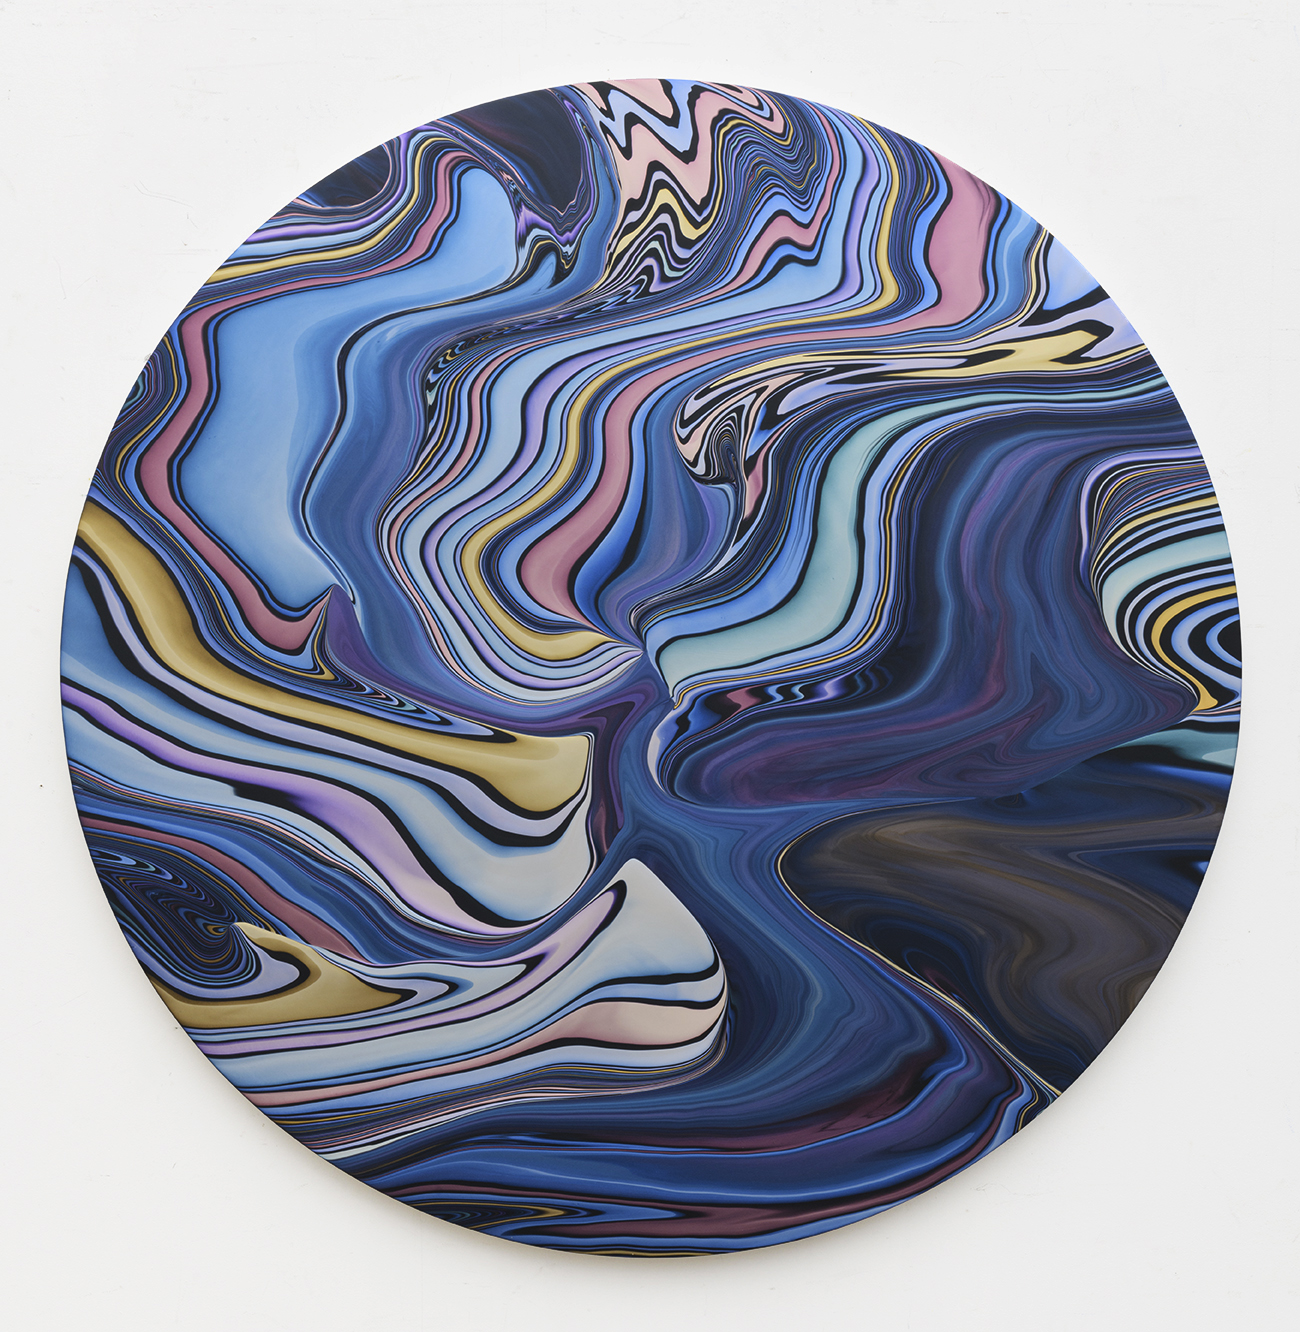 Andy Moses, Geodesy 1204, 2018, Acrylic on Circular Canvas, 60 inches diameter